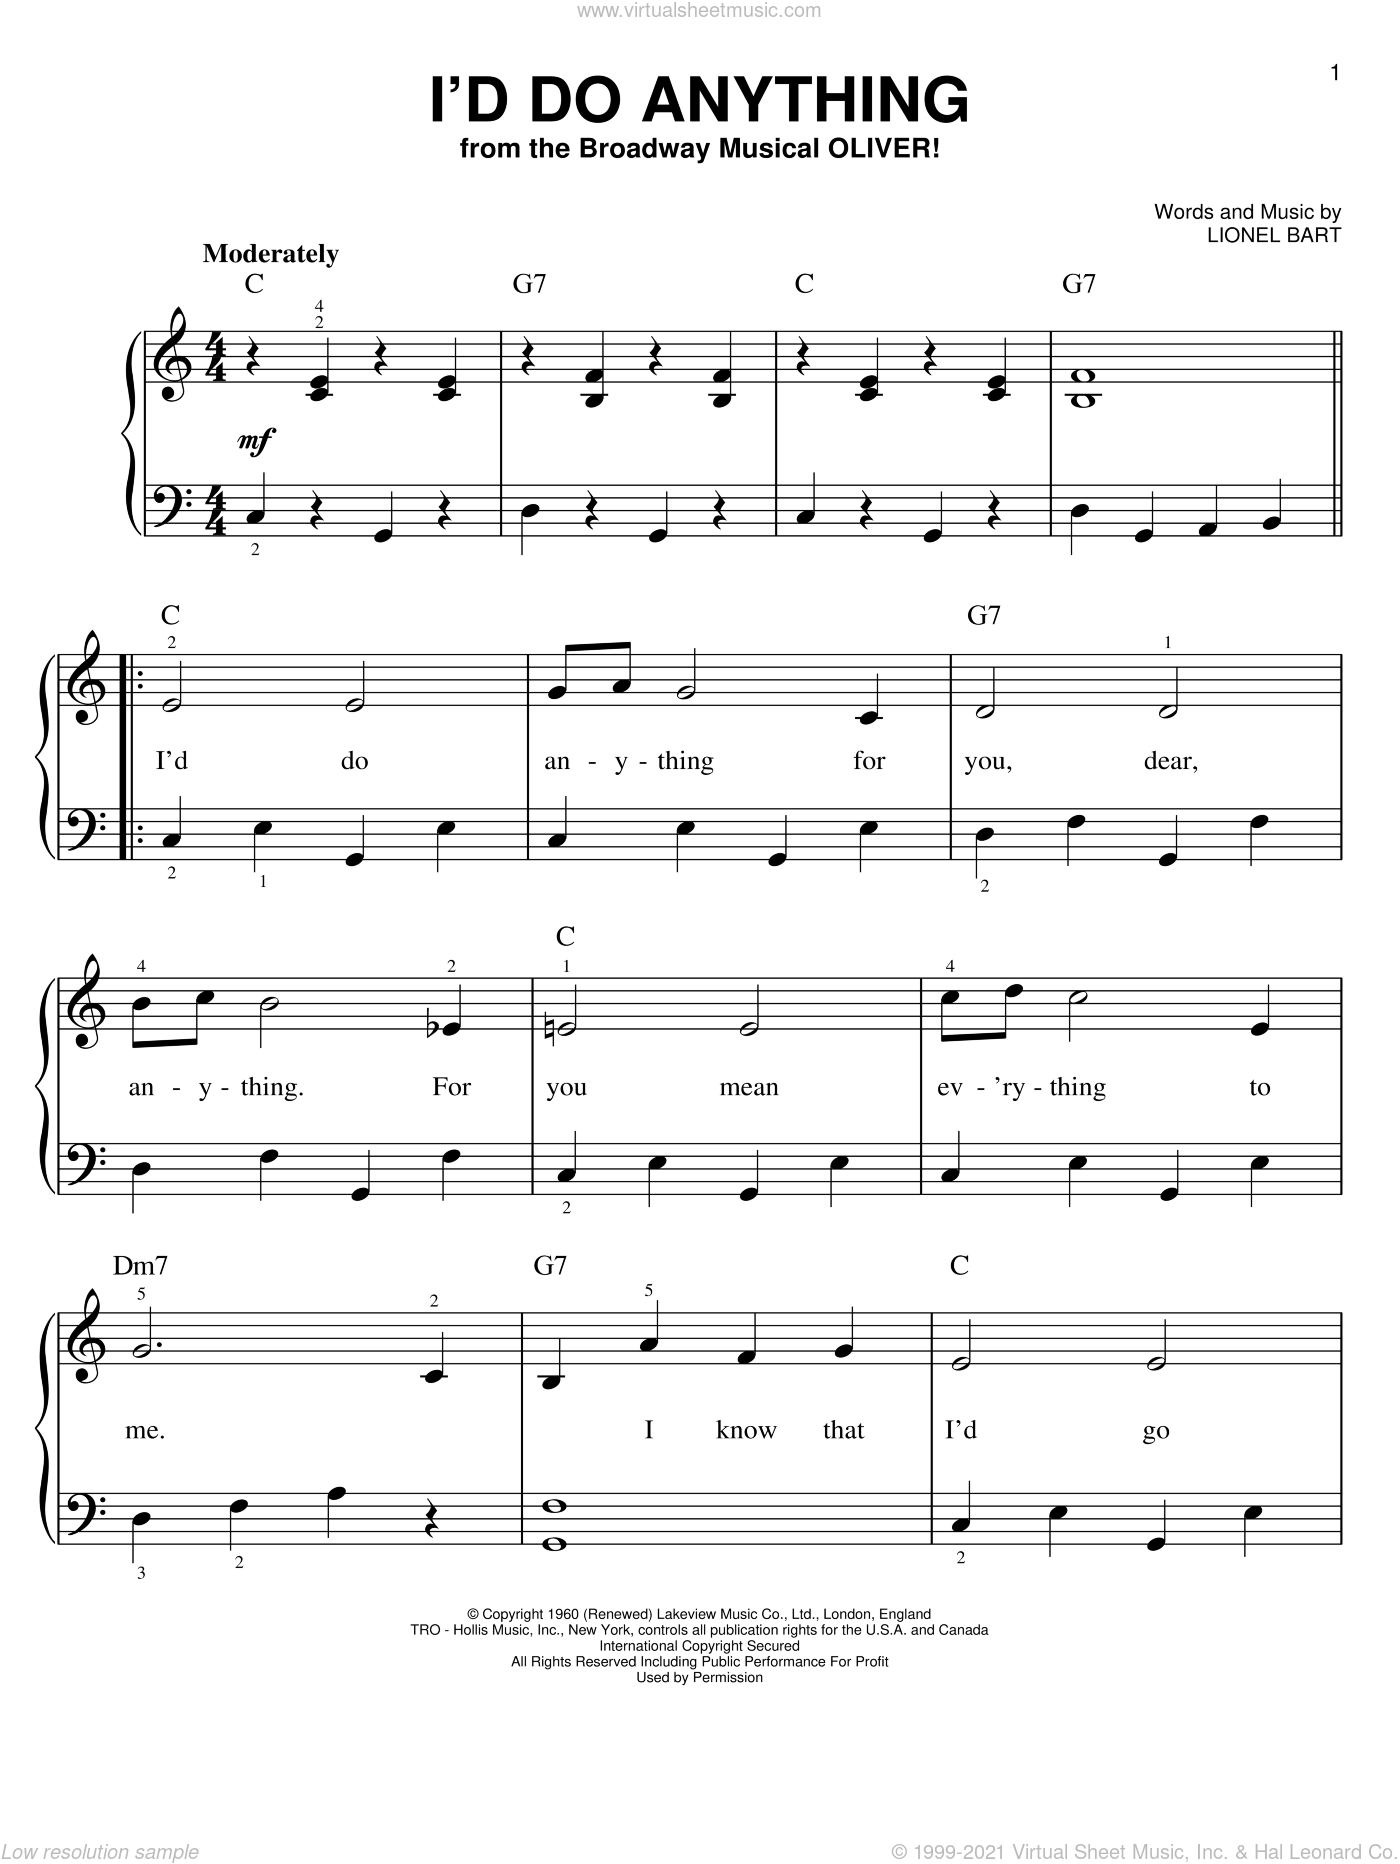 I'd Do Anything sheet music for piano solo by Lionel Bart, easy piano. Score Image Preview.